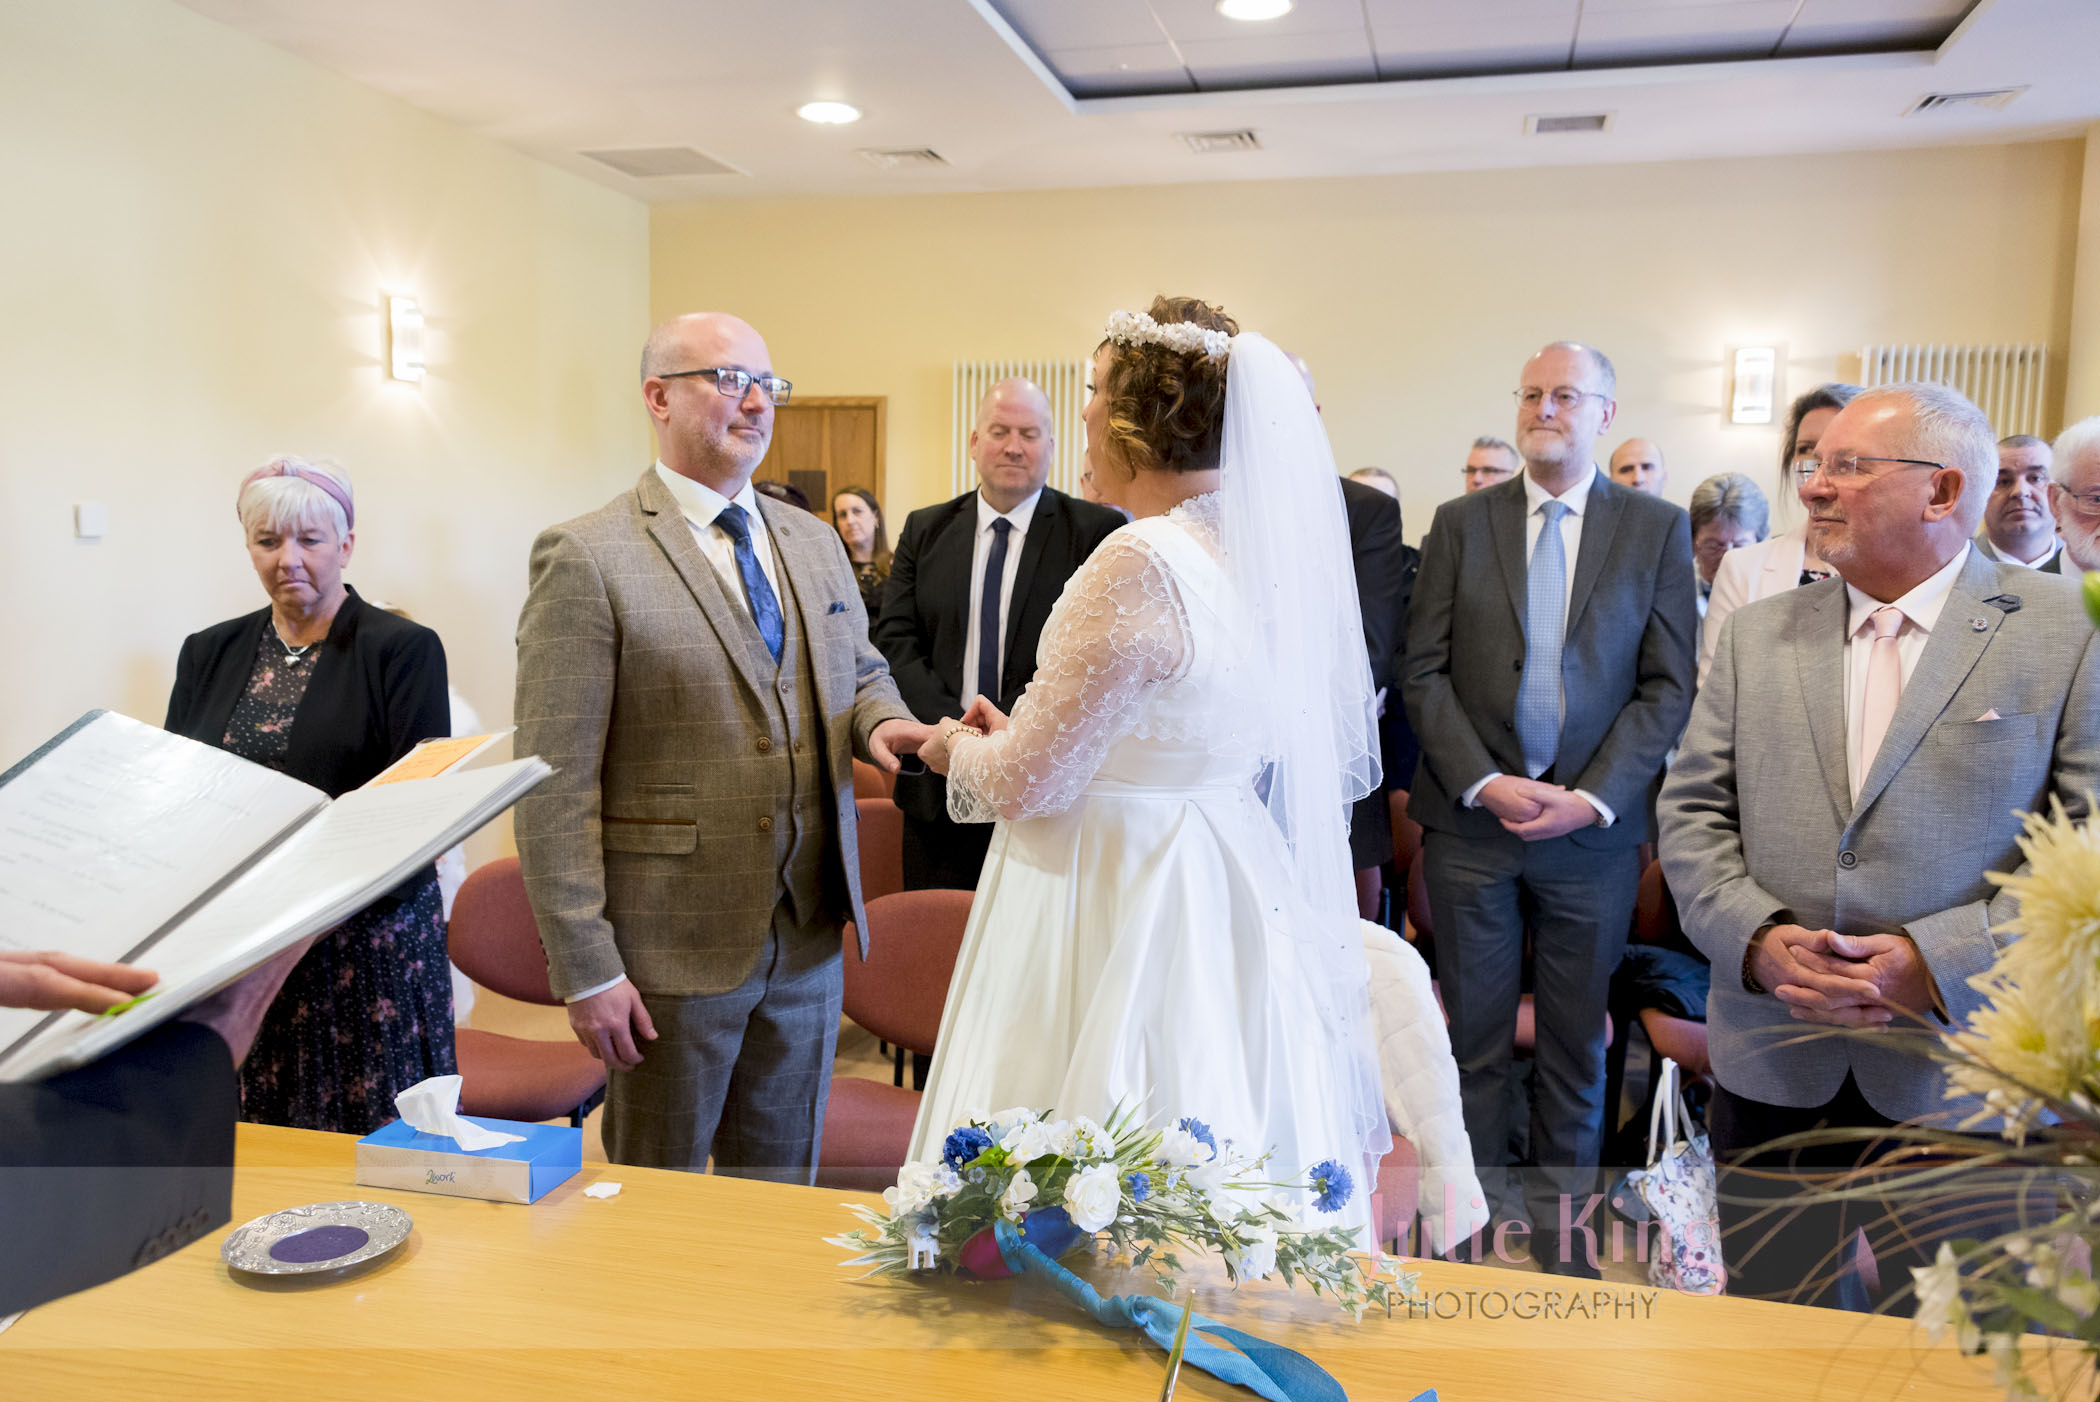 Registry office weddings photography Worcester